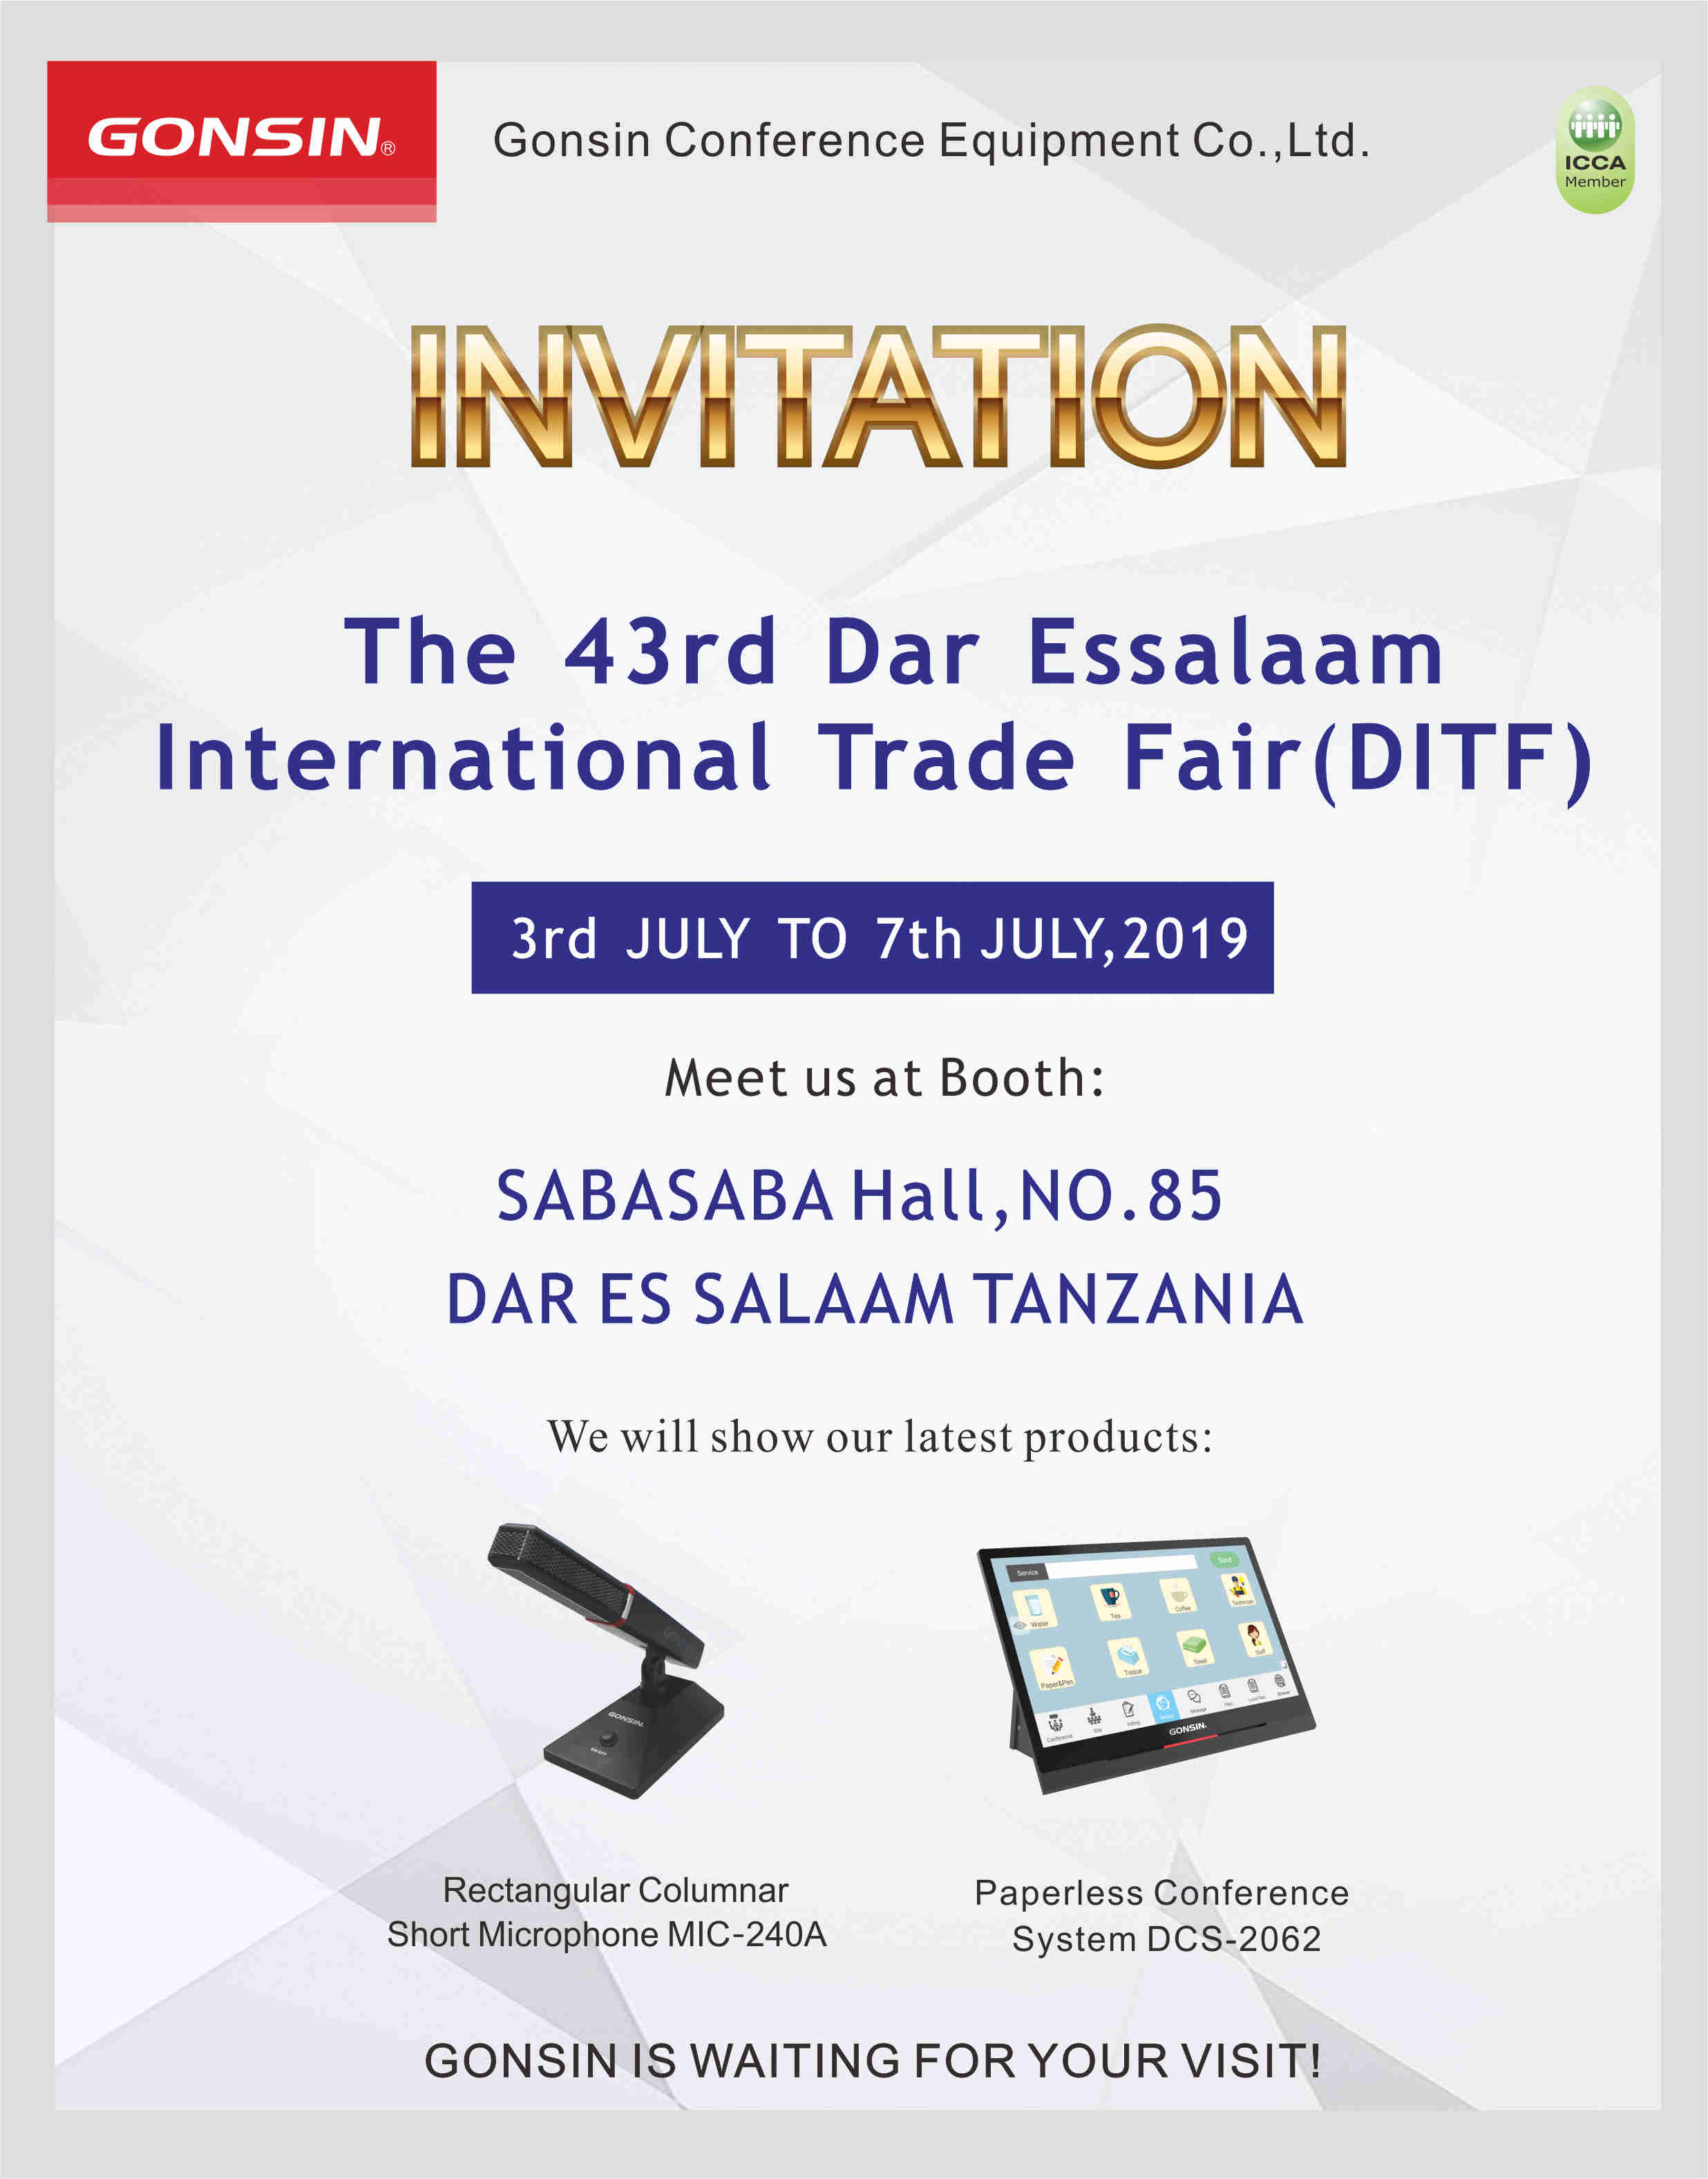 The 43th Dar Essalaam International Trade Fair (DITF) Invitation